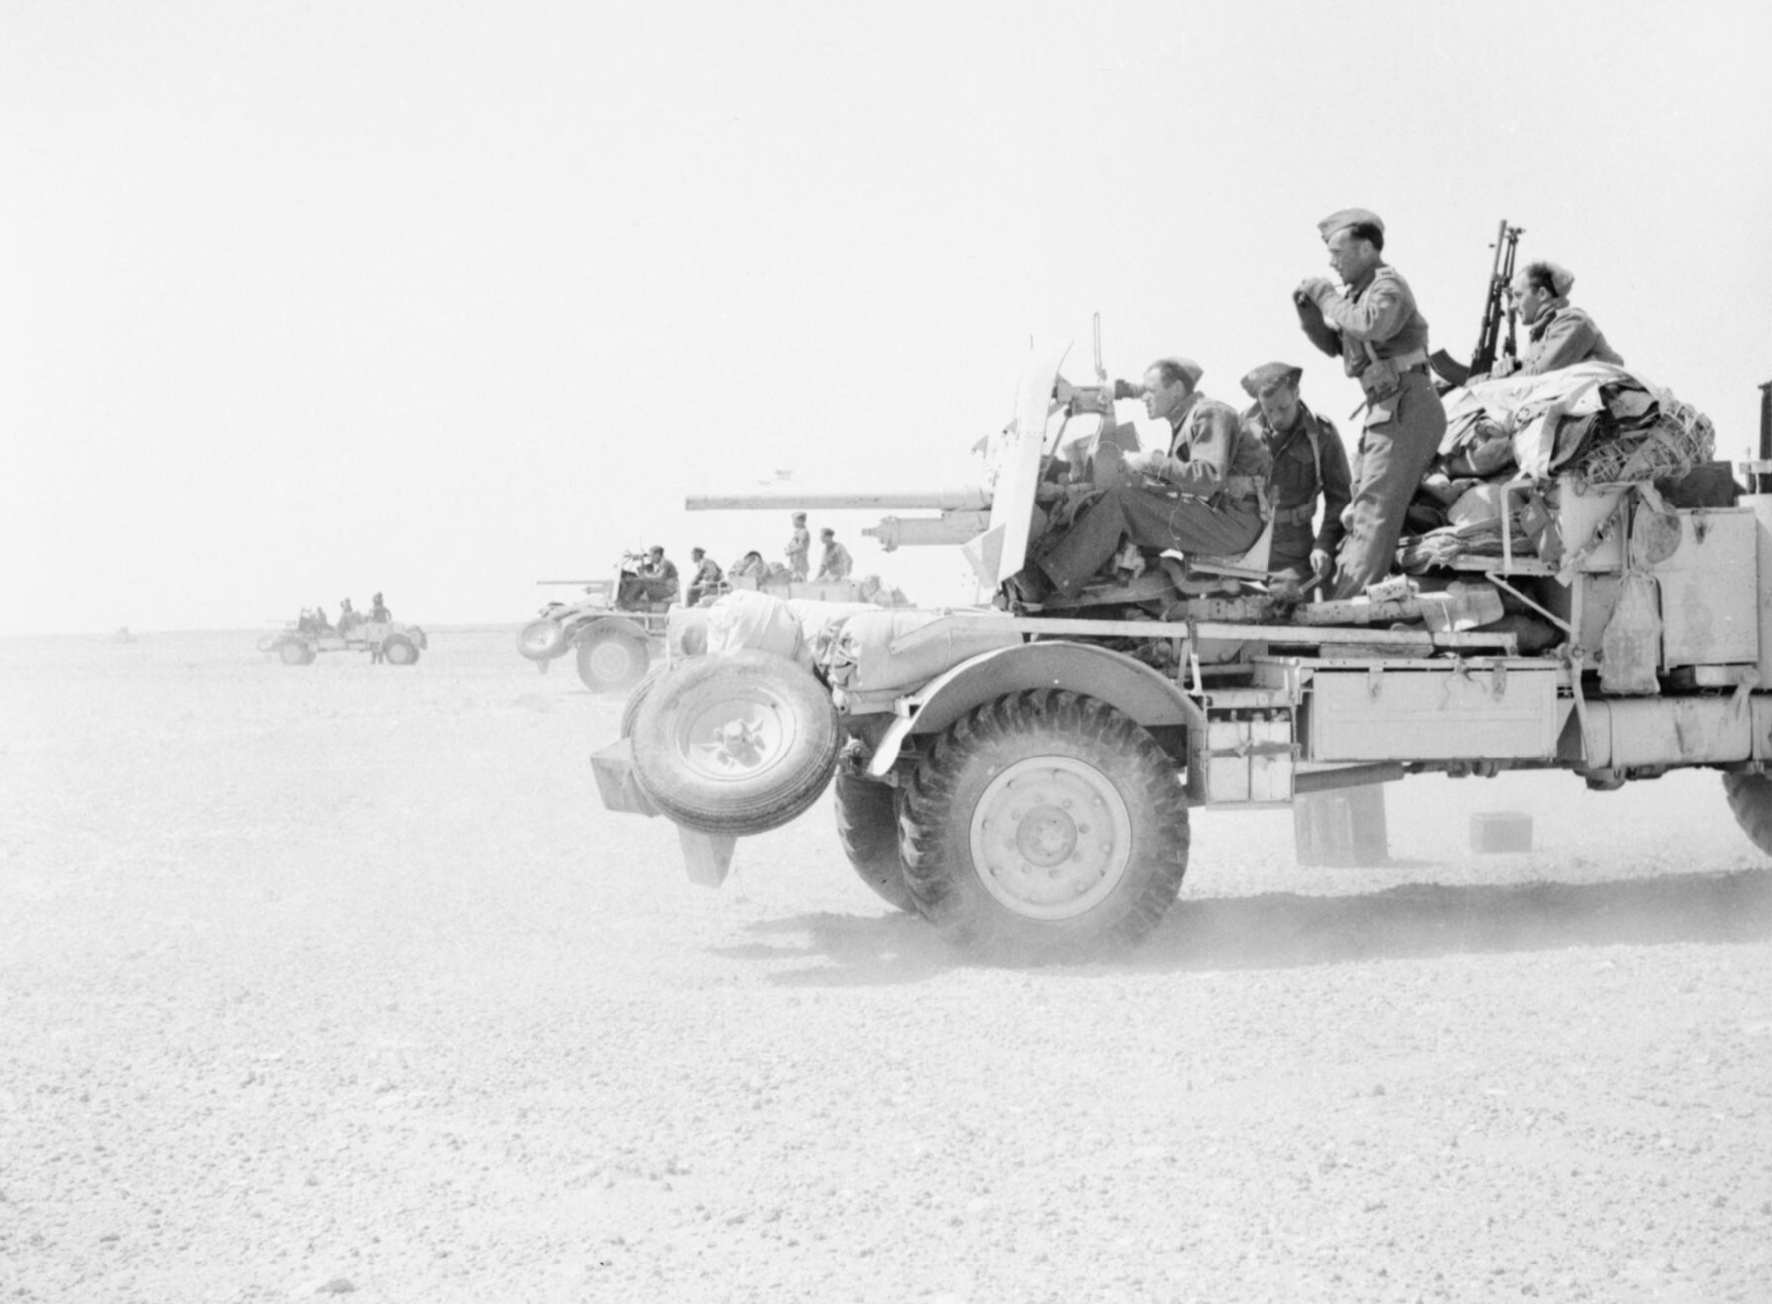 Lorry-mounted 2-pdr anti-tank guns on a practice shoot in the Western Desert, 3 May 1942 - iwm E 11223